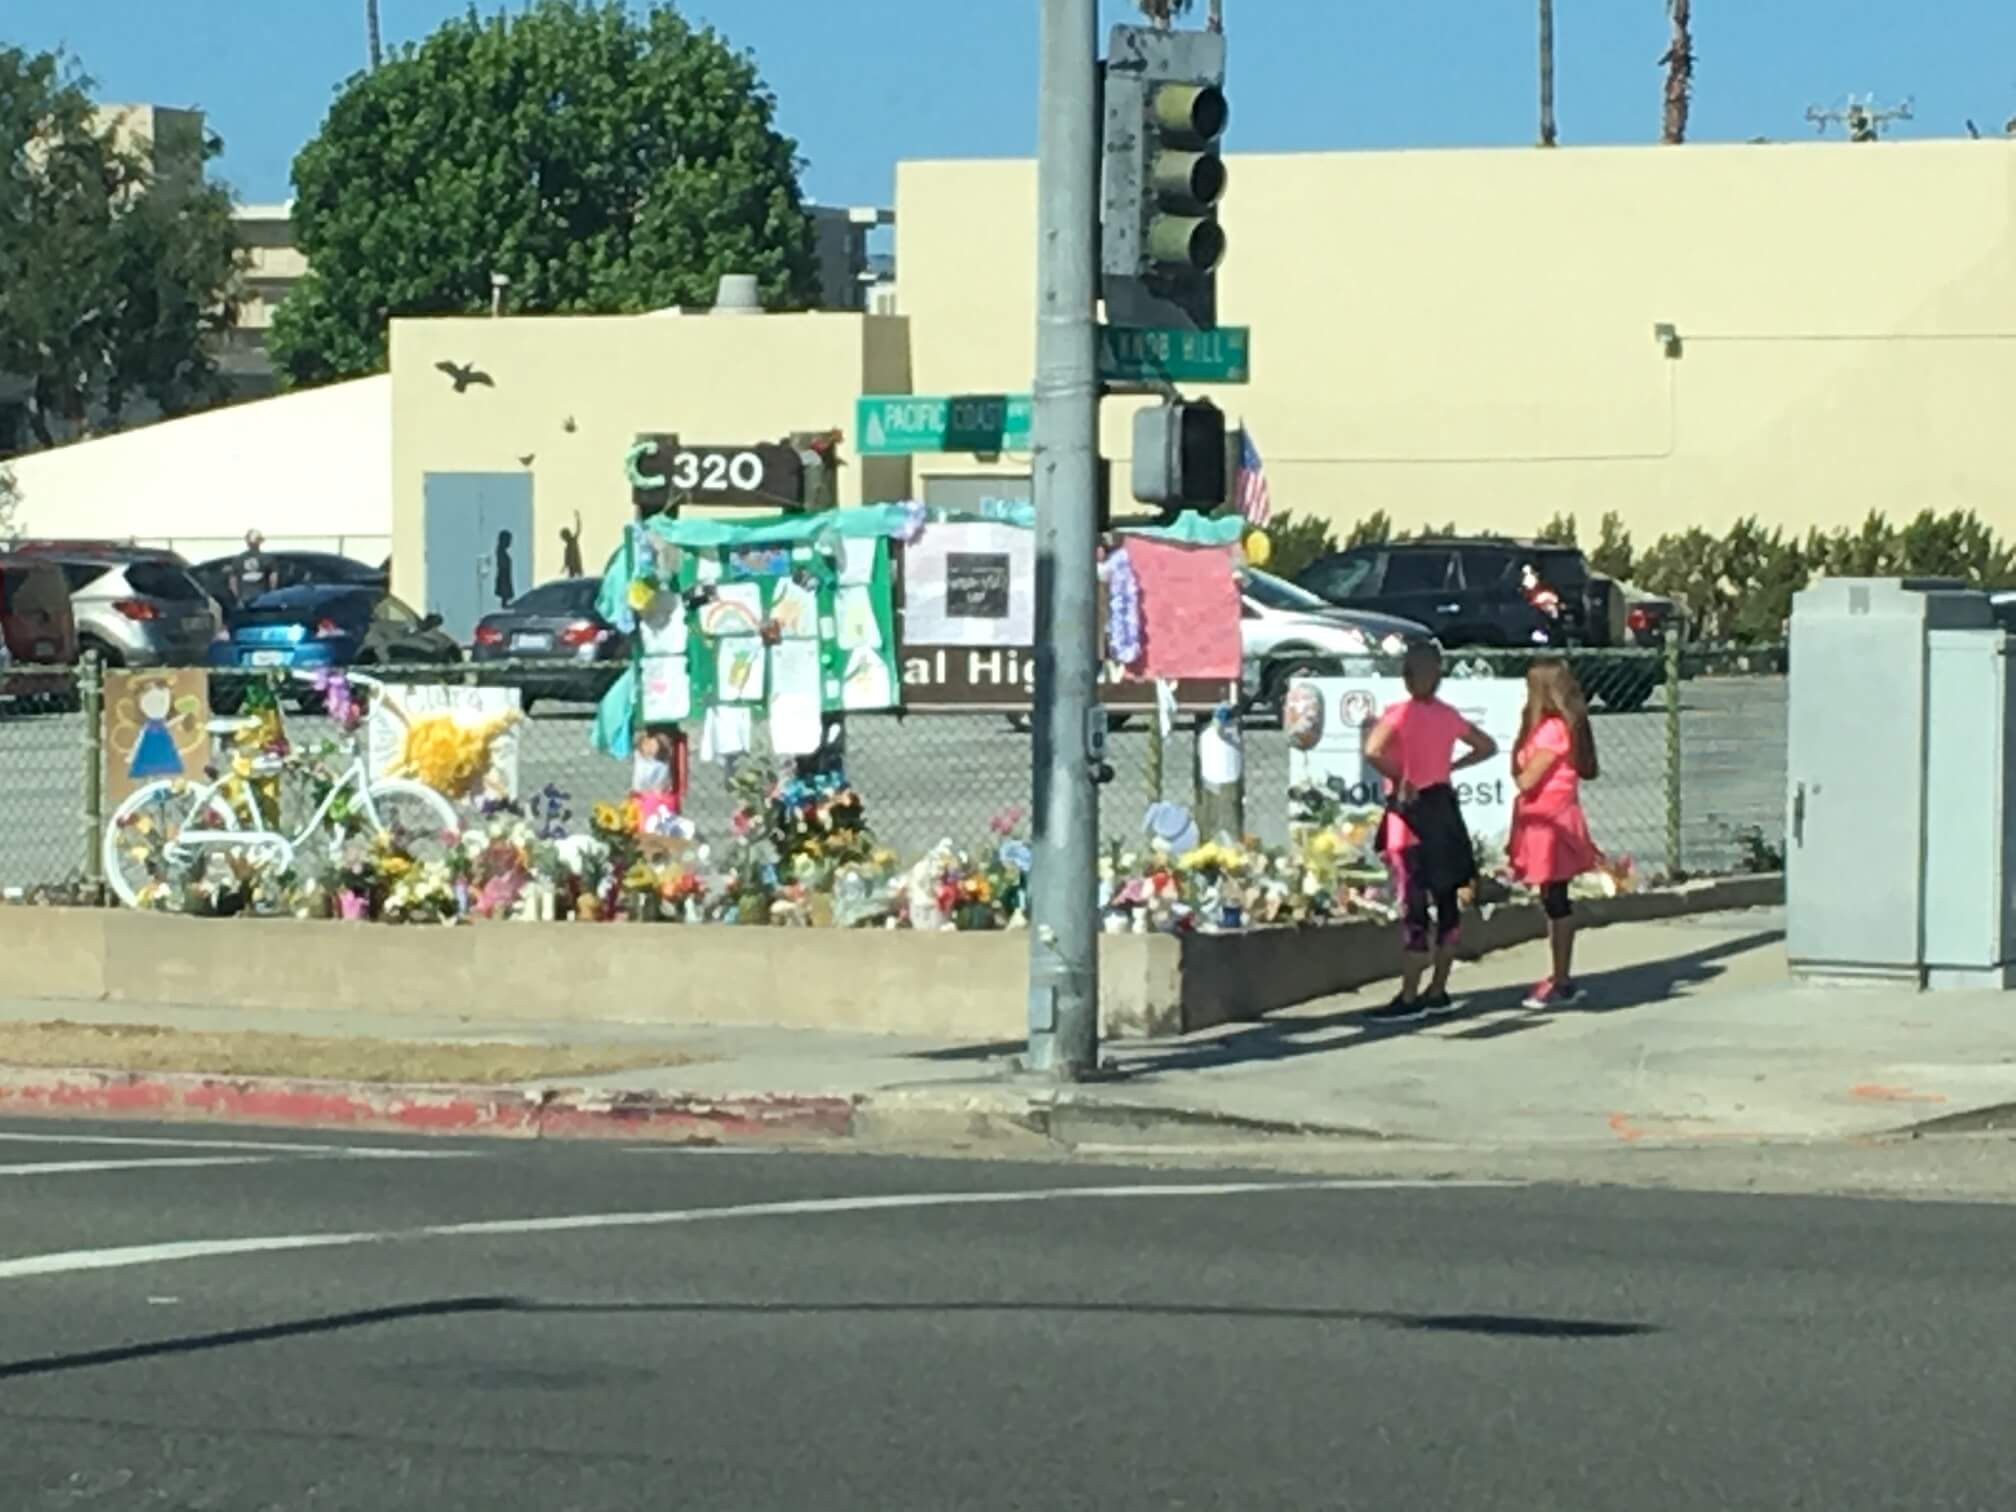 Memorial for two children kiled in bicycle accident in Redondo Beach, CA.